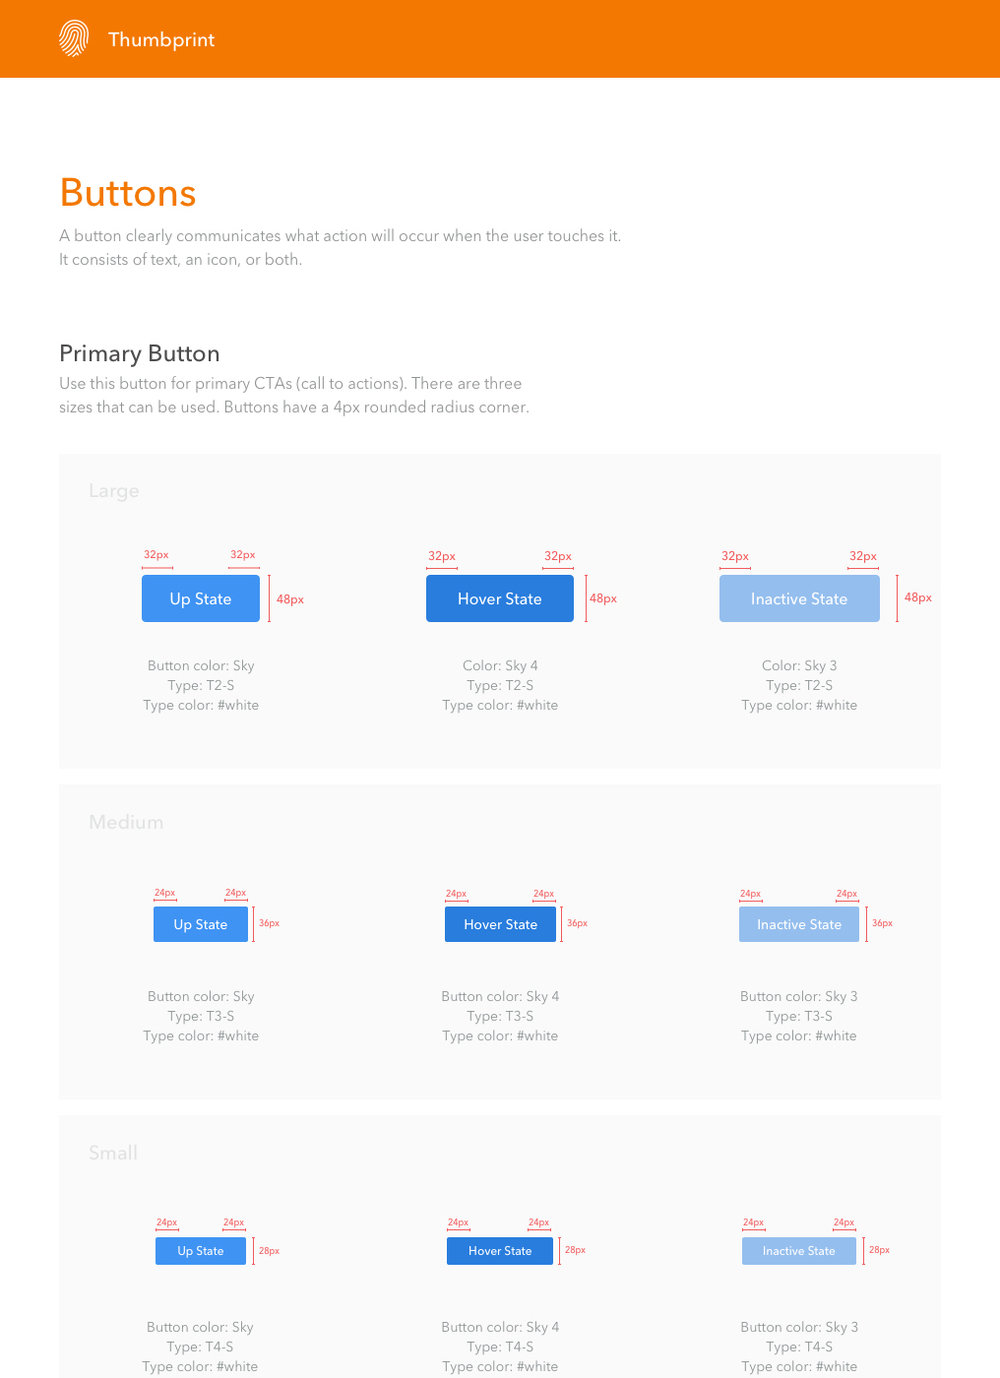 styleguide_elements_0000_Buttons & Links.jpg